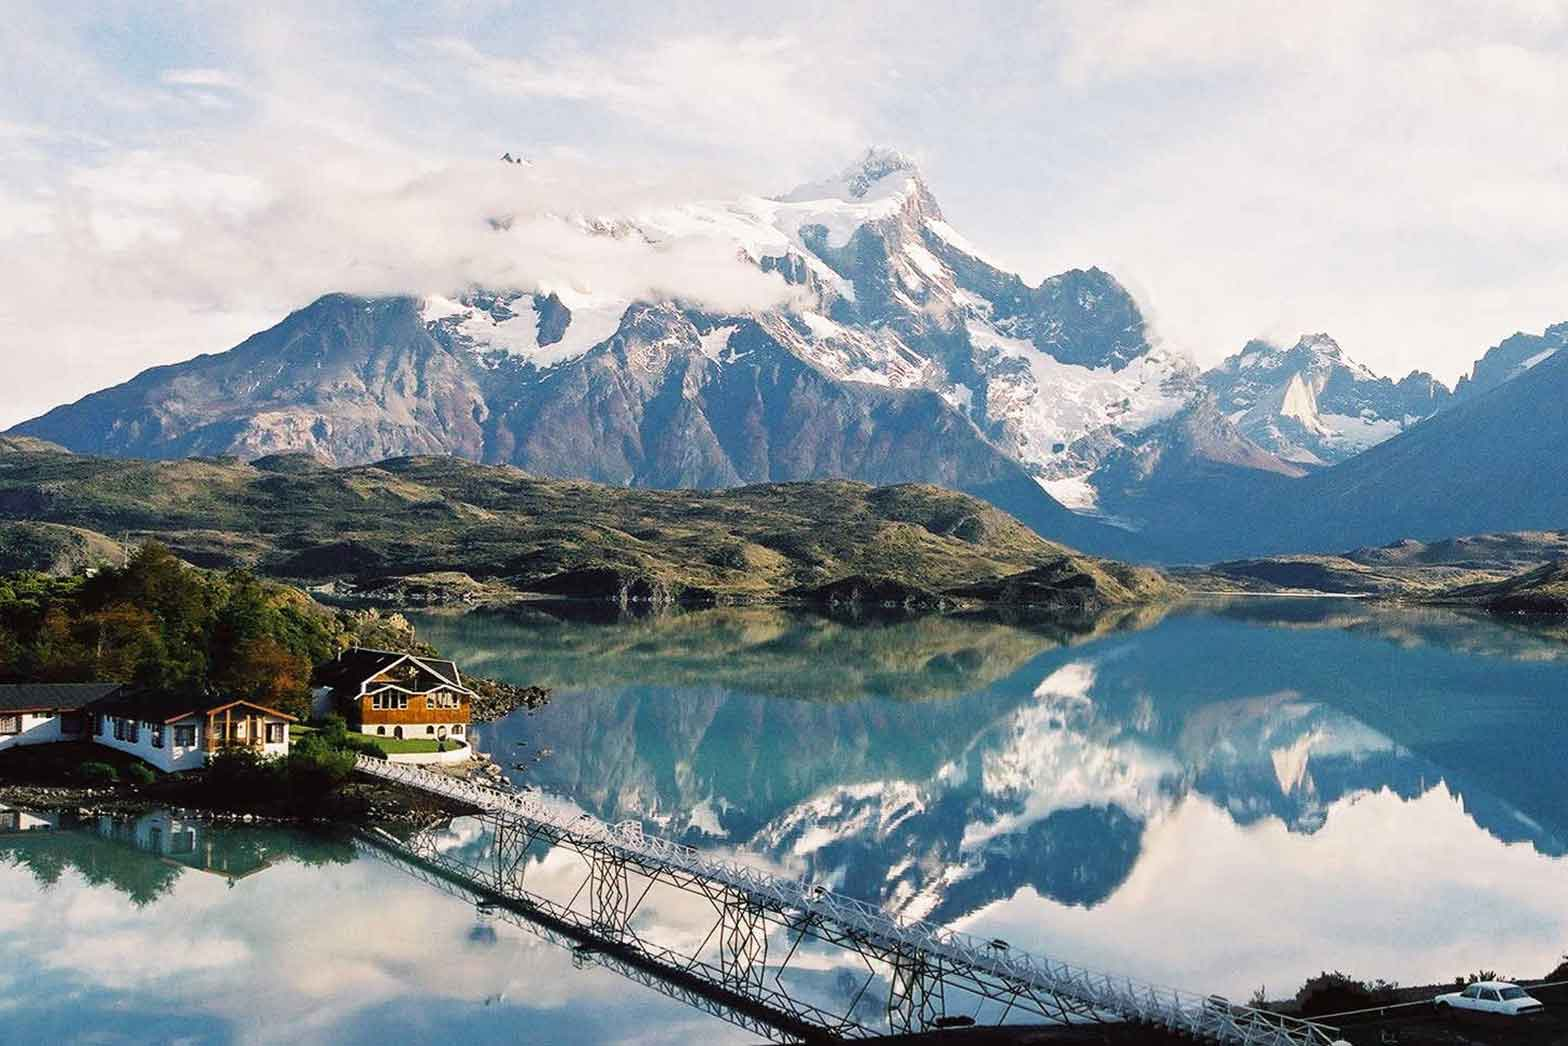 Patagonia South America >> Ushuaia - Discover Patagonia Motorcycle tour in South America